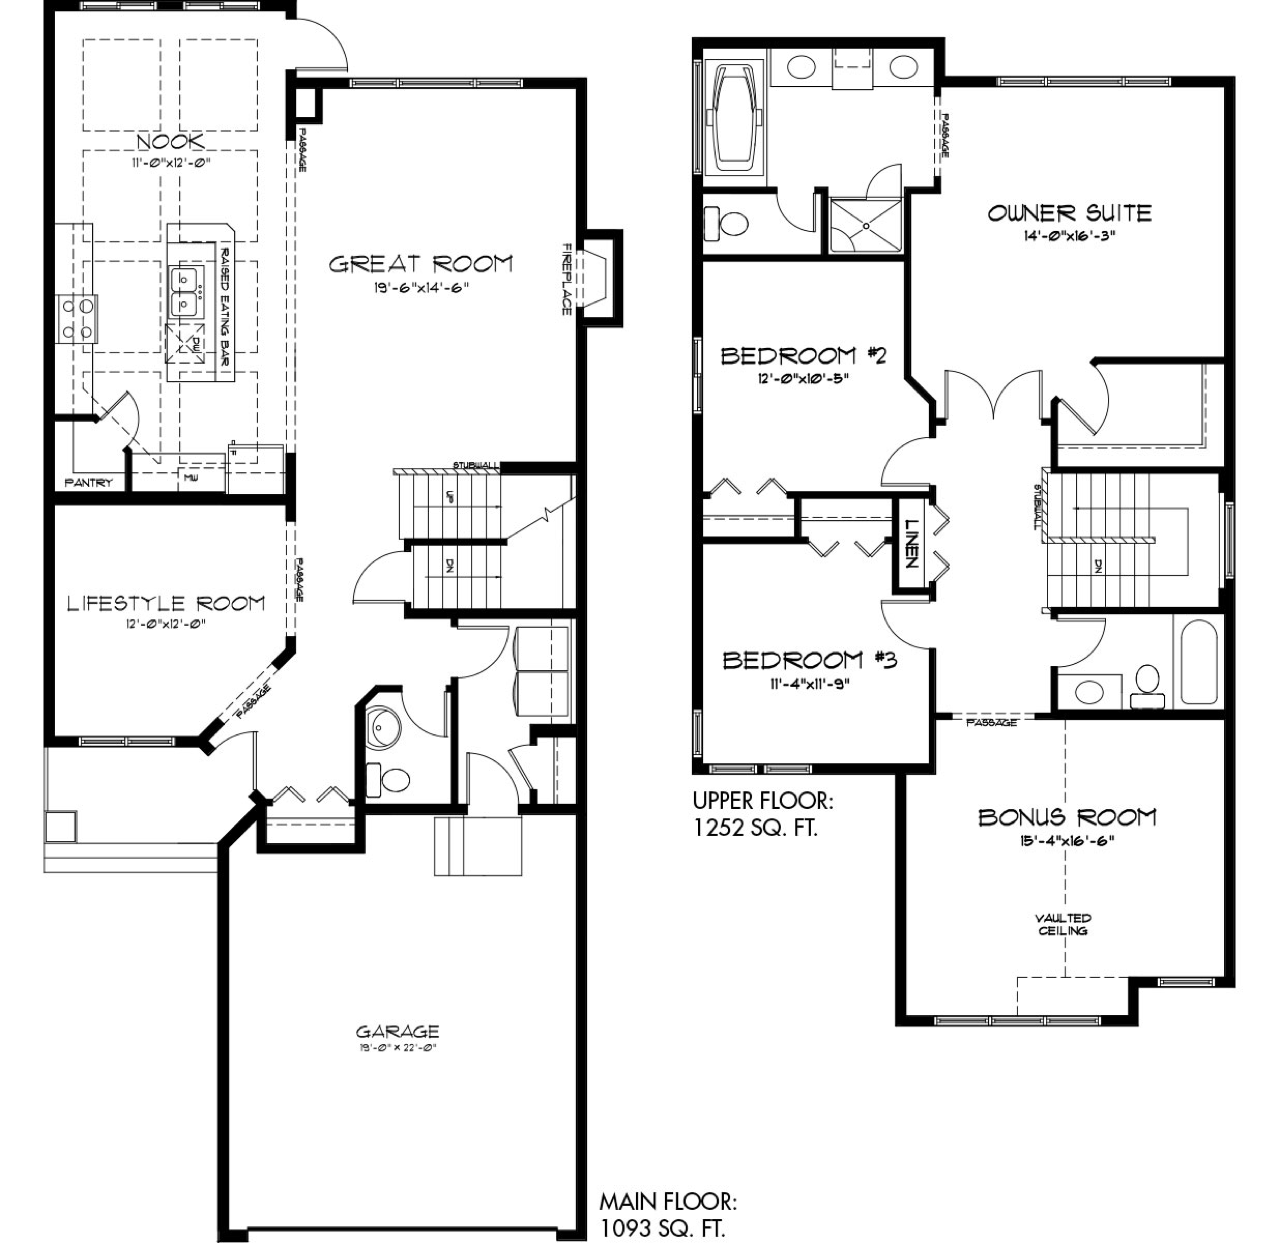 Latest Quick Possession Homes From Pacesetter Madison E Floor Plan Image